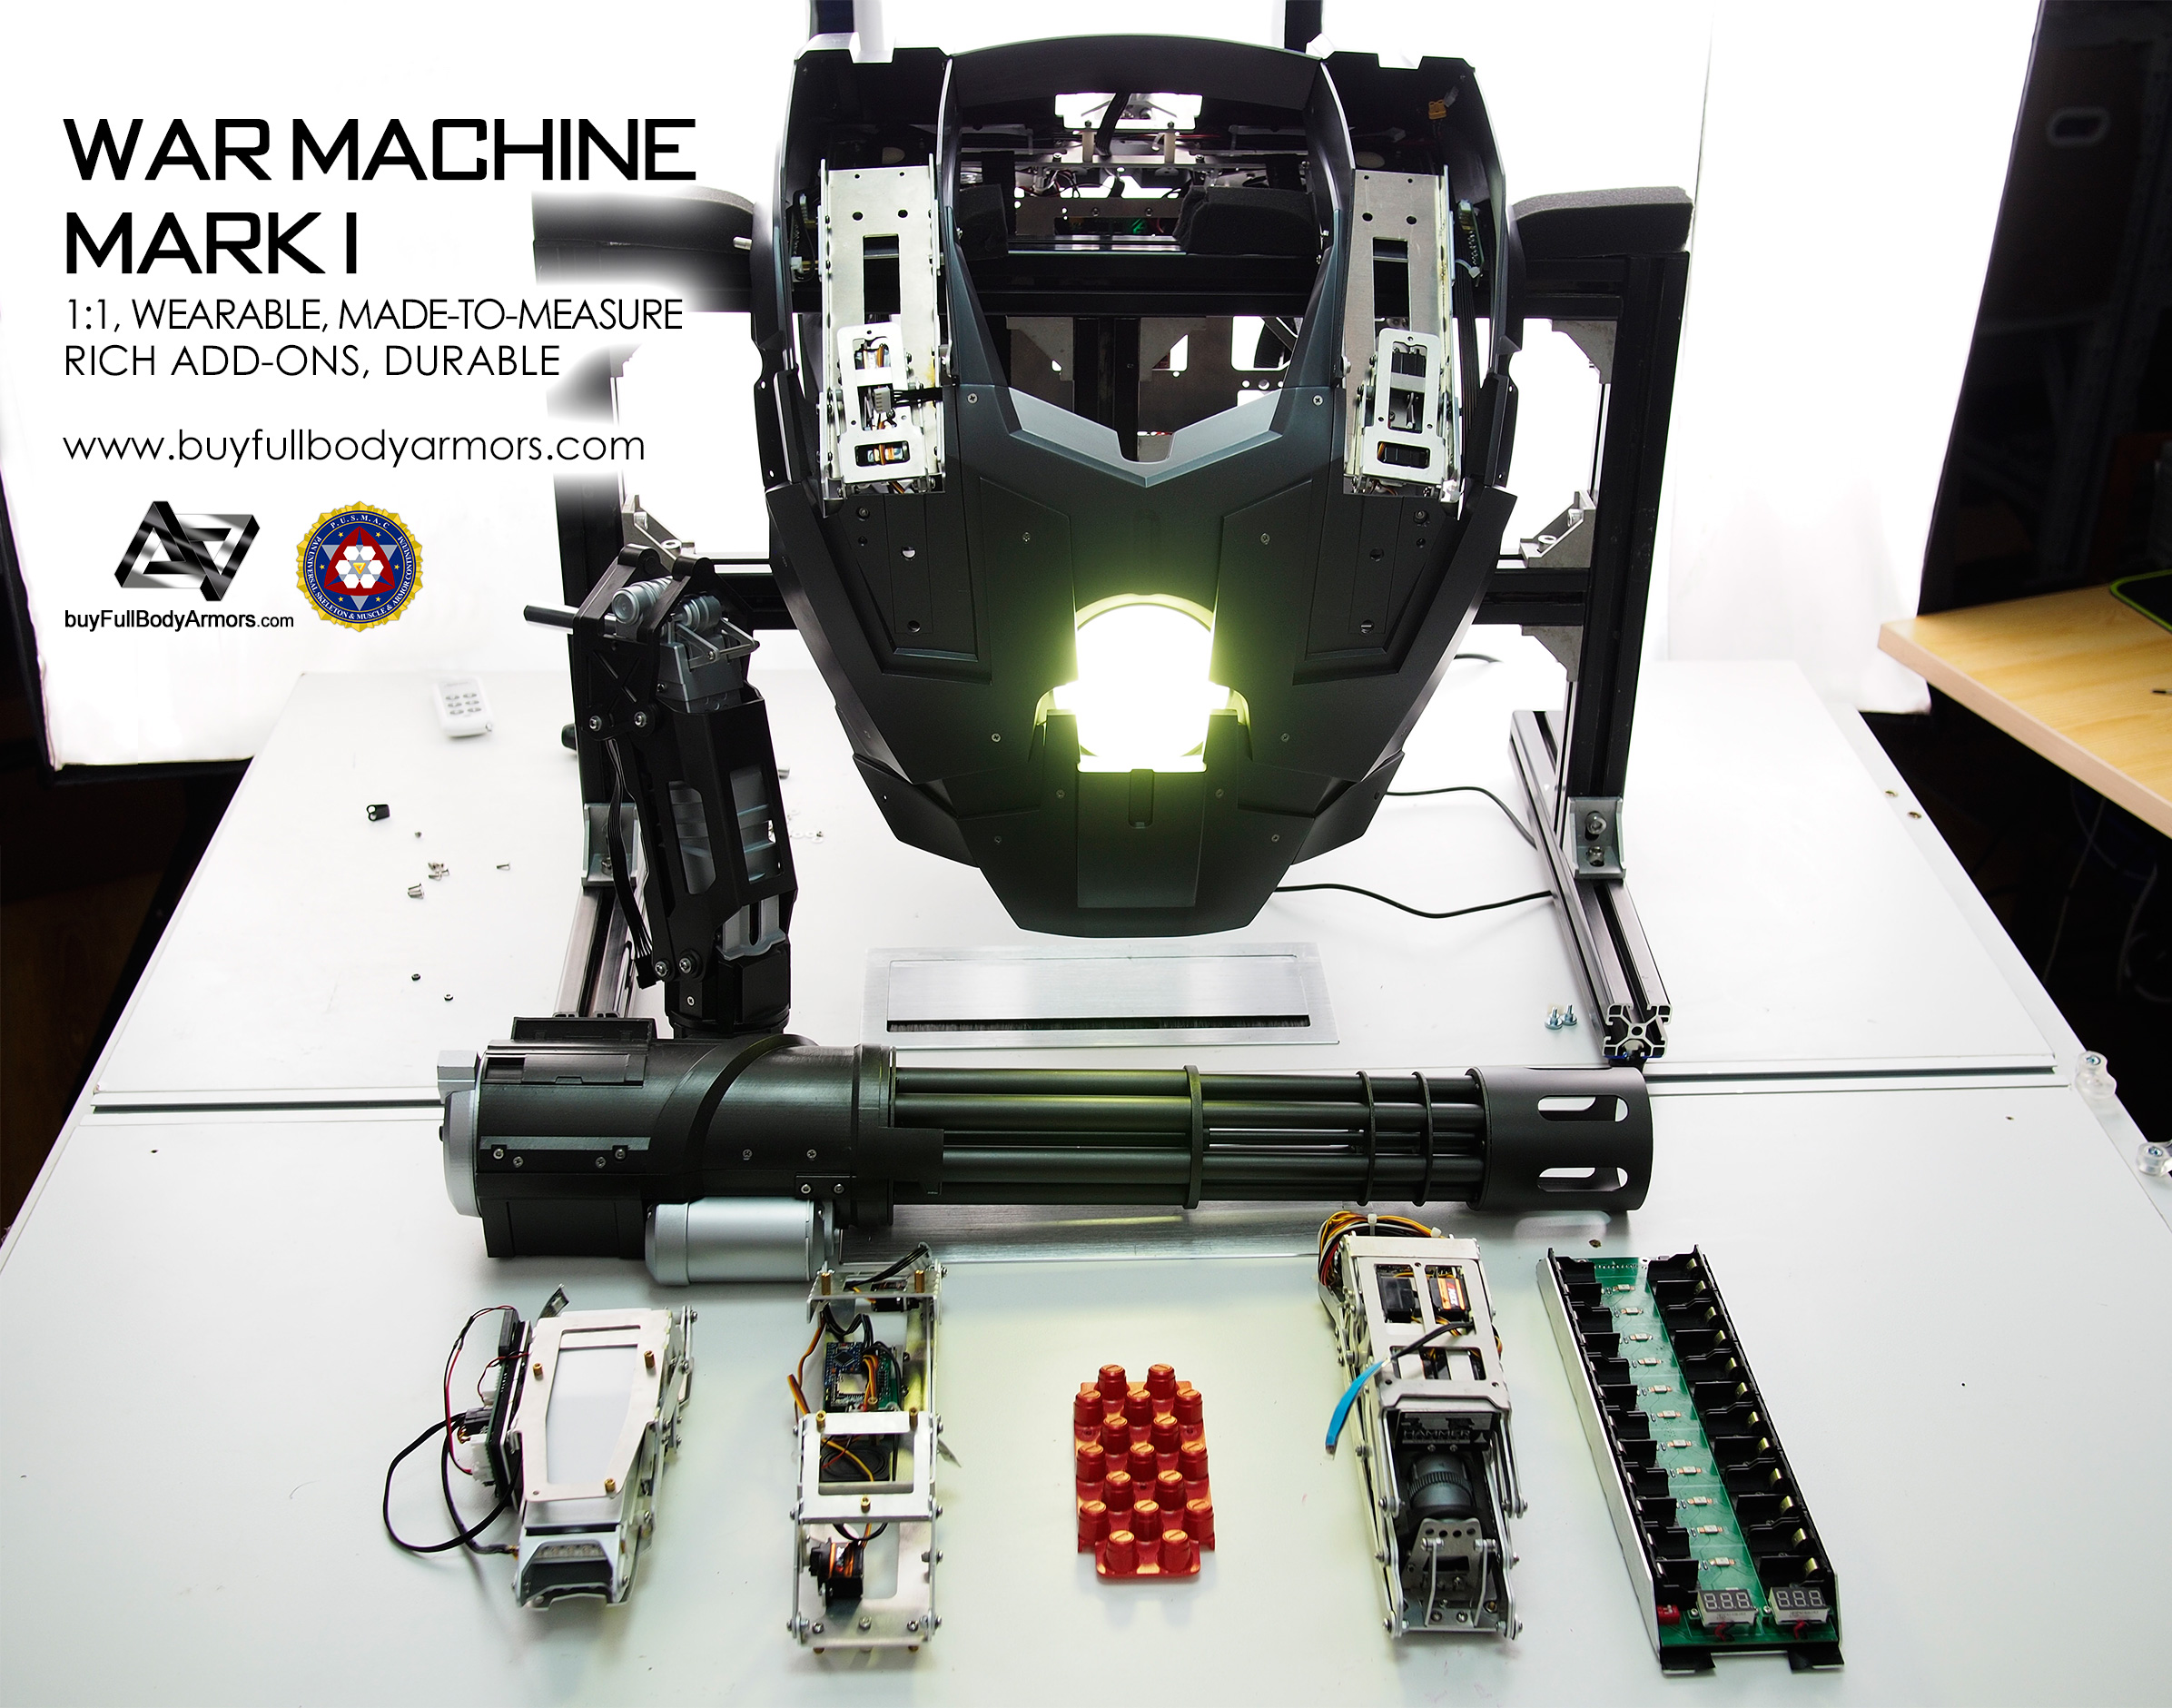 The Wearable War Machine Mark I Chest Add-ons